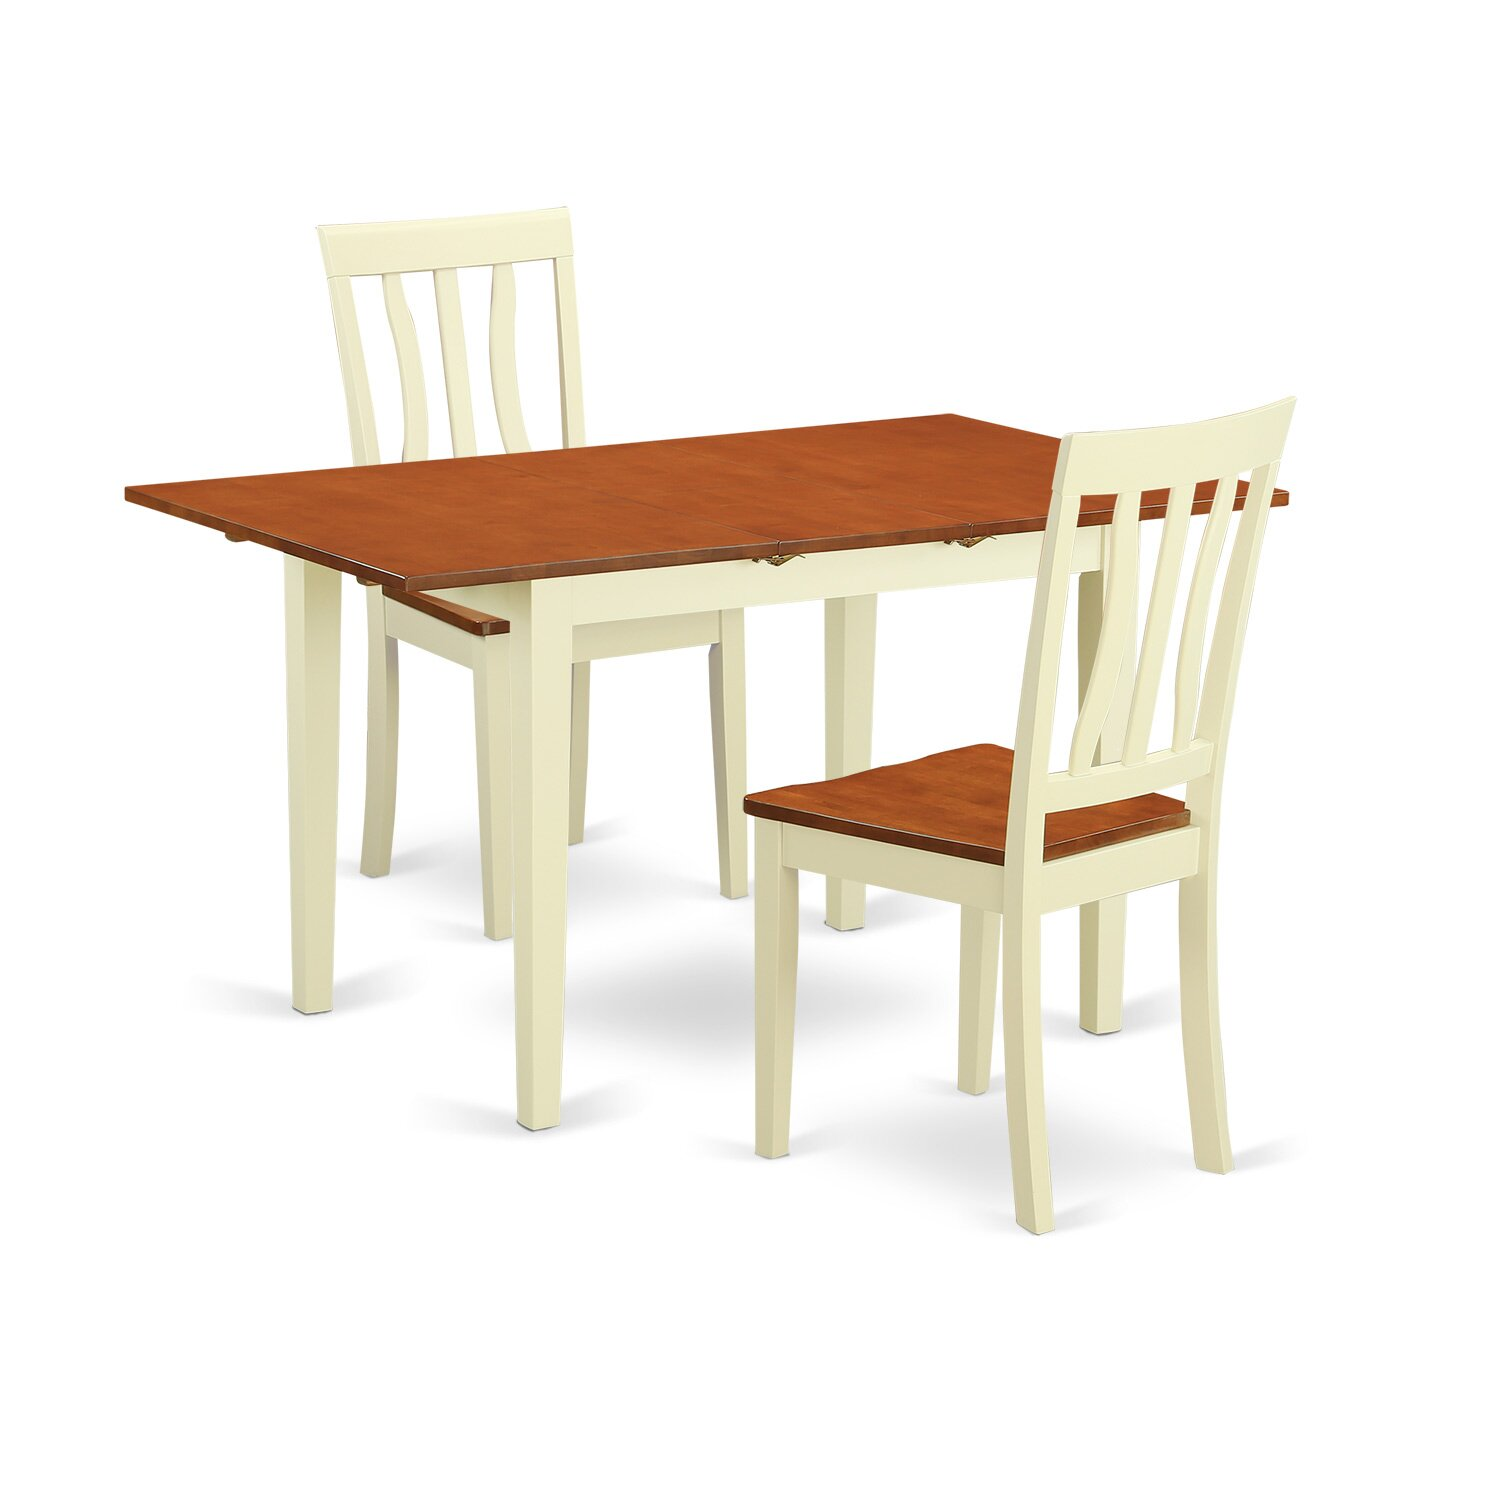 Wooden importers 3 piece dining set reviews wayfair for 2 piece dining room set